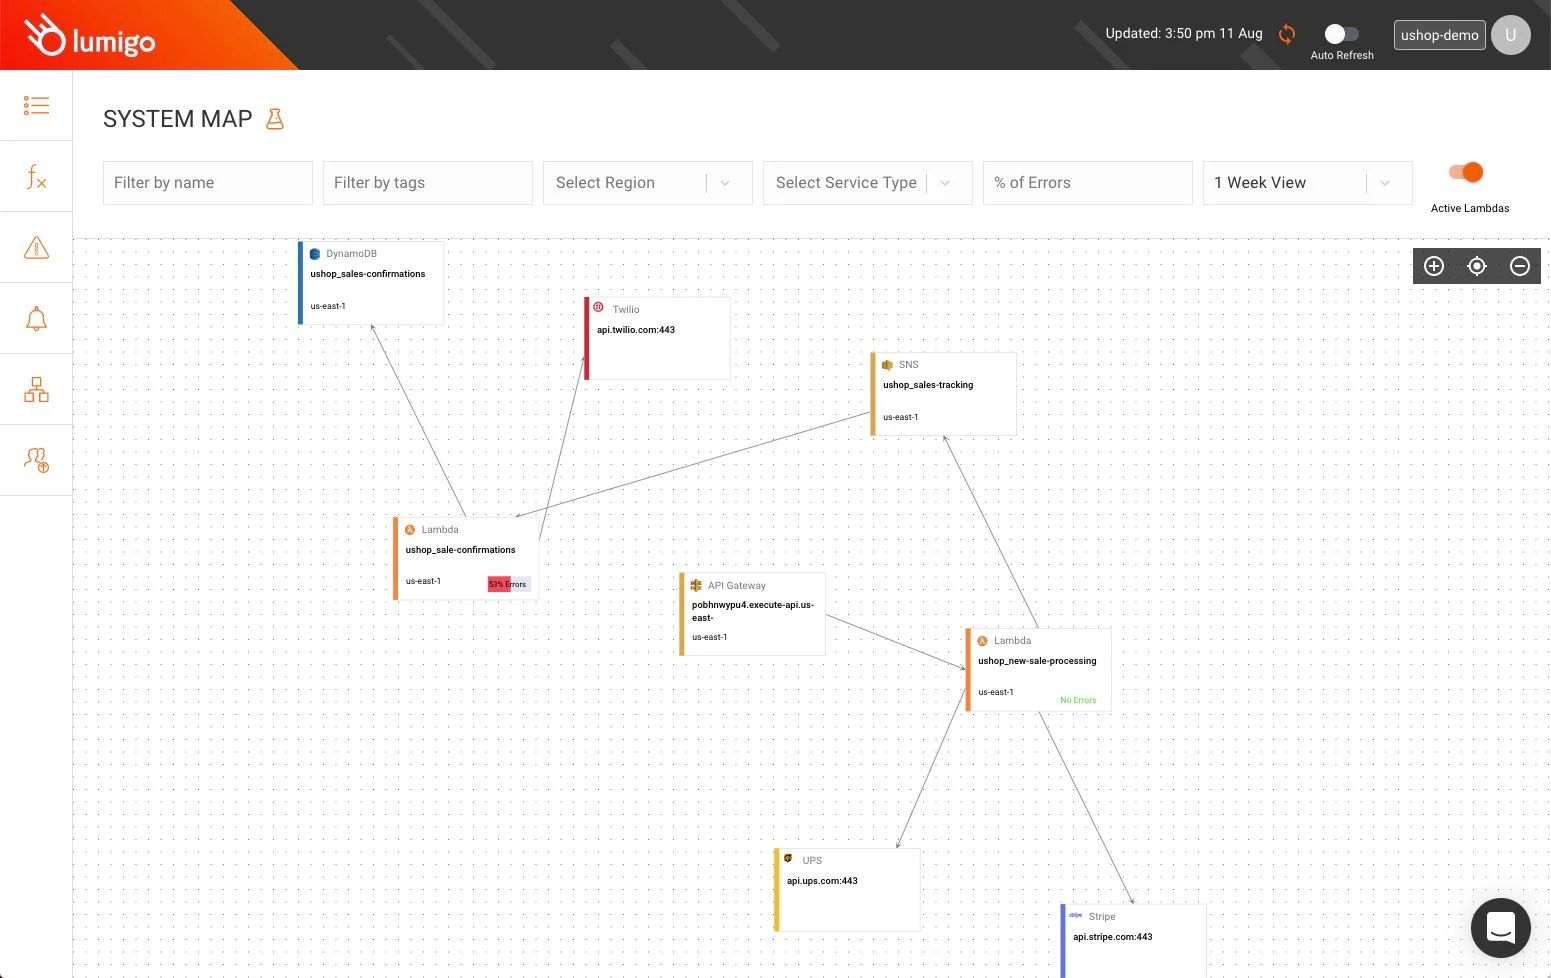 The Lumigo architecture map is updated in real time.